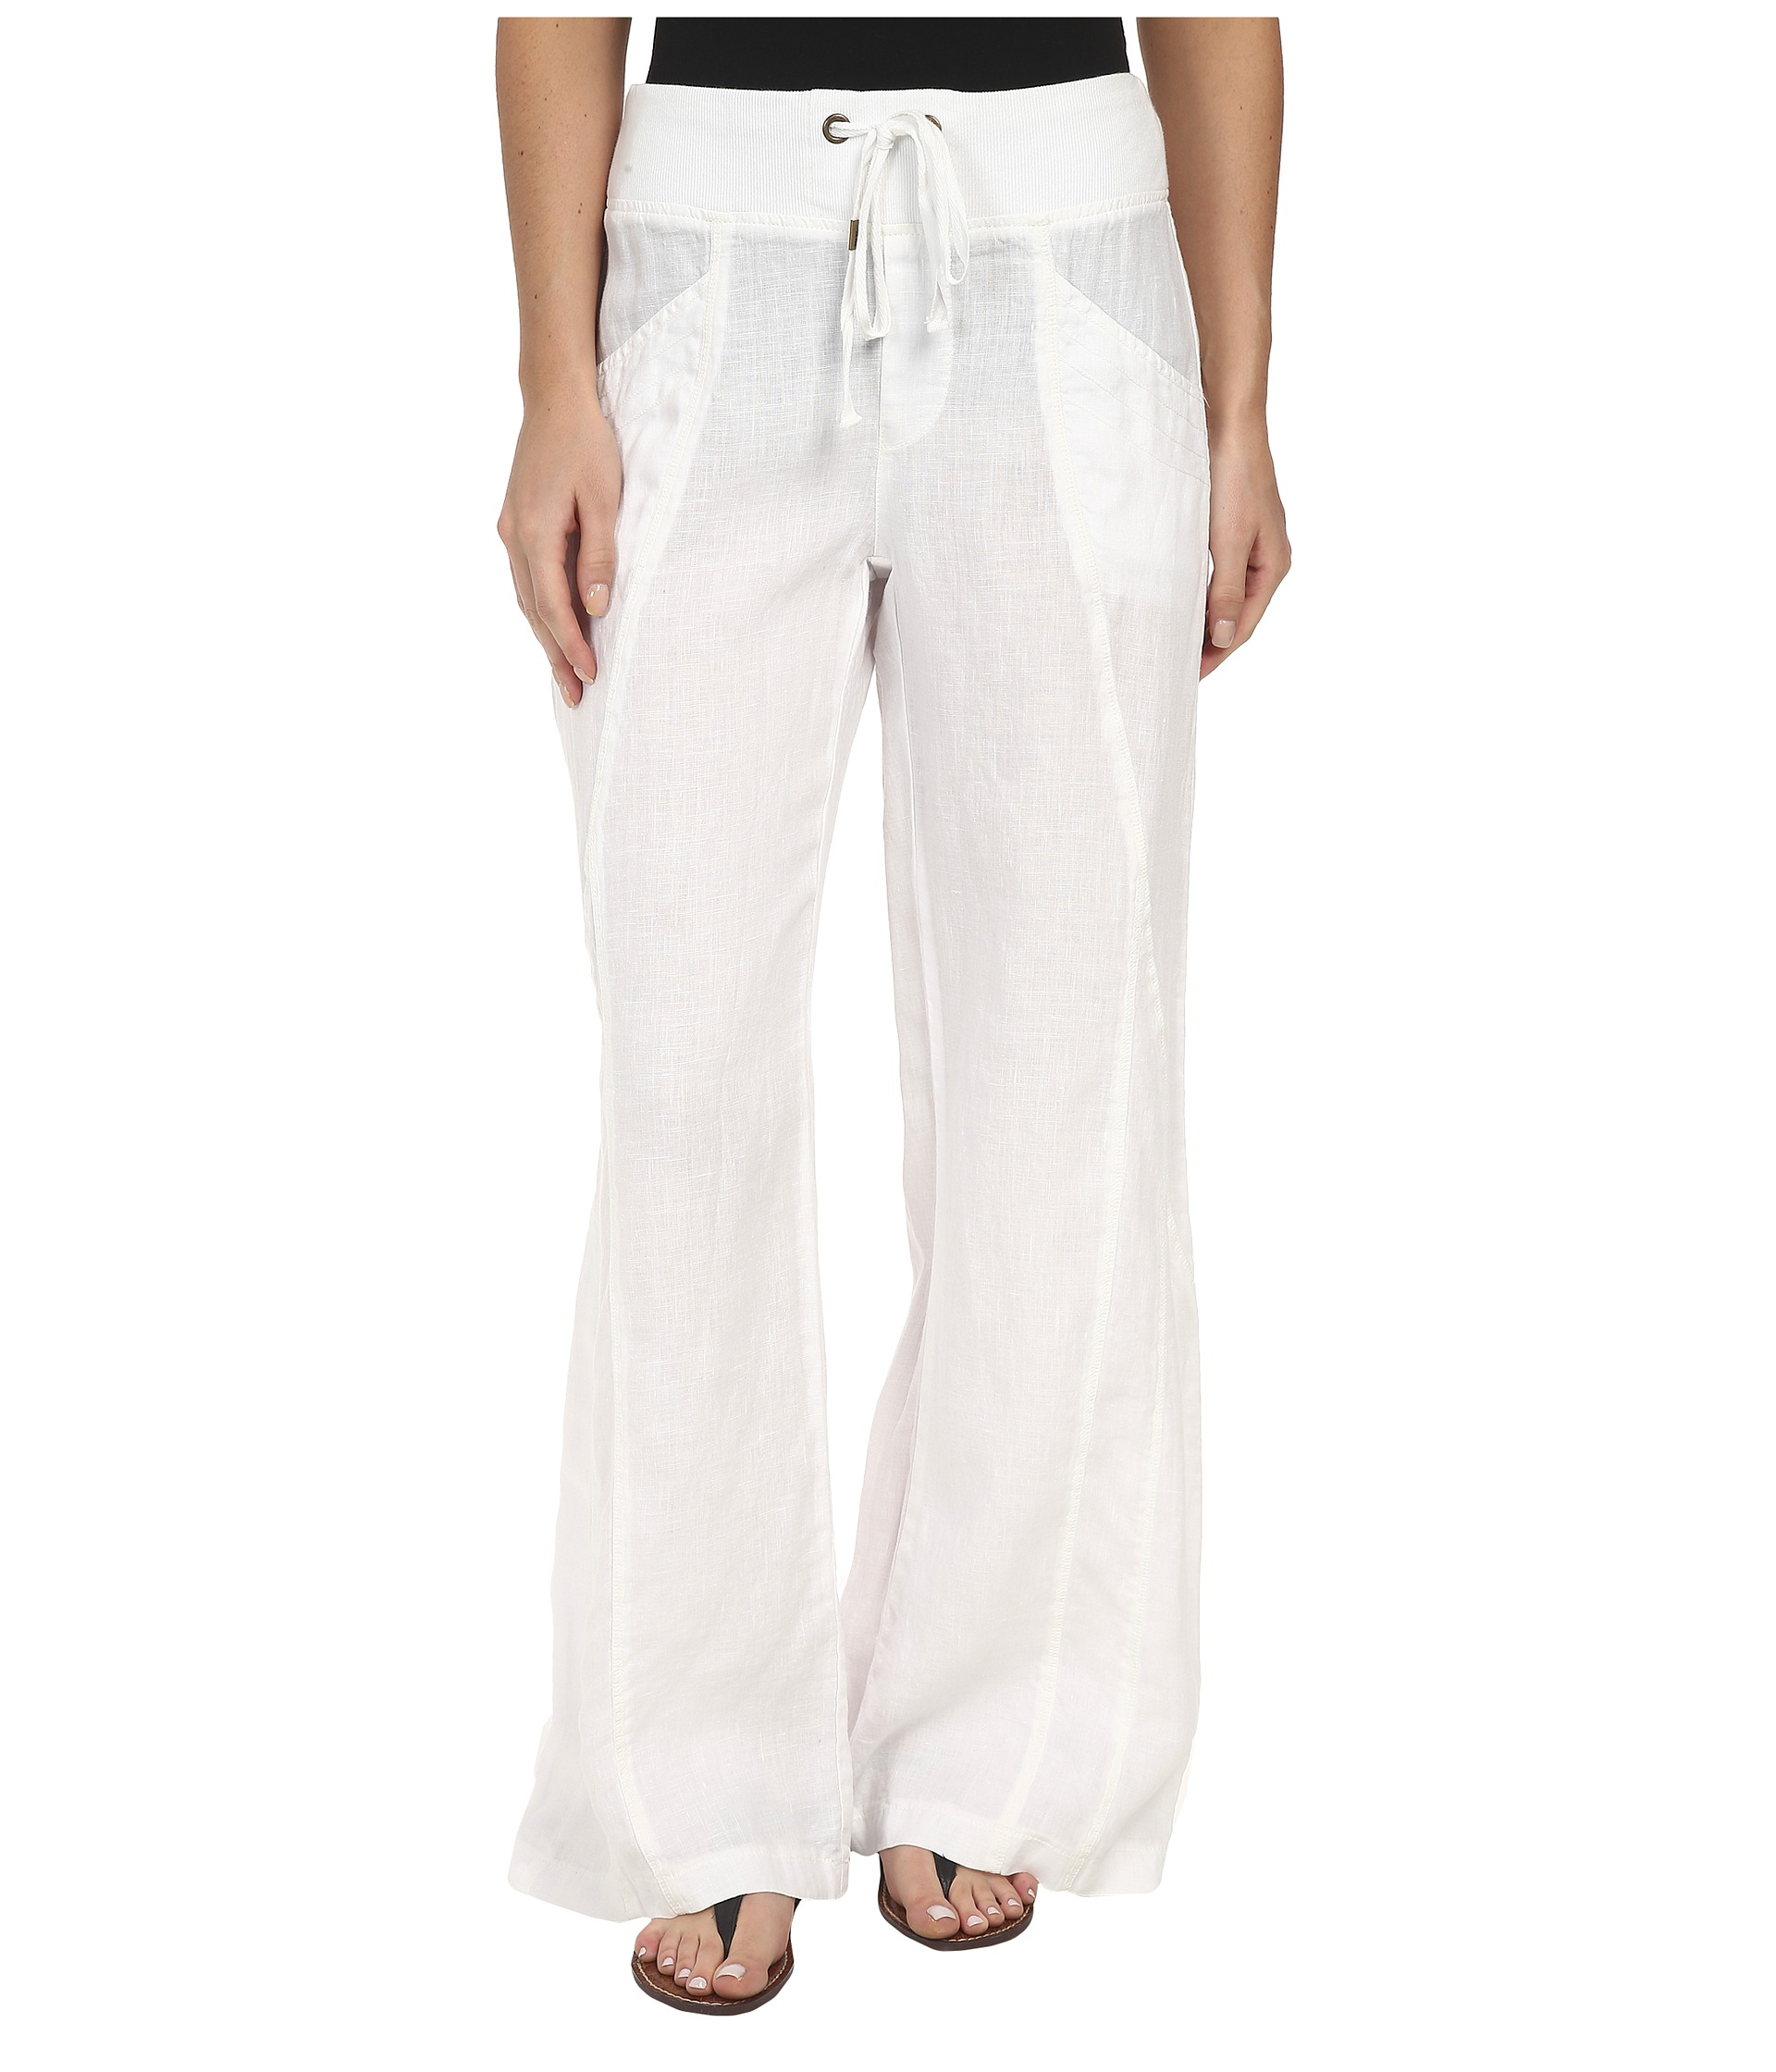 womens white linen drawstring pants - Pi Pants